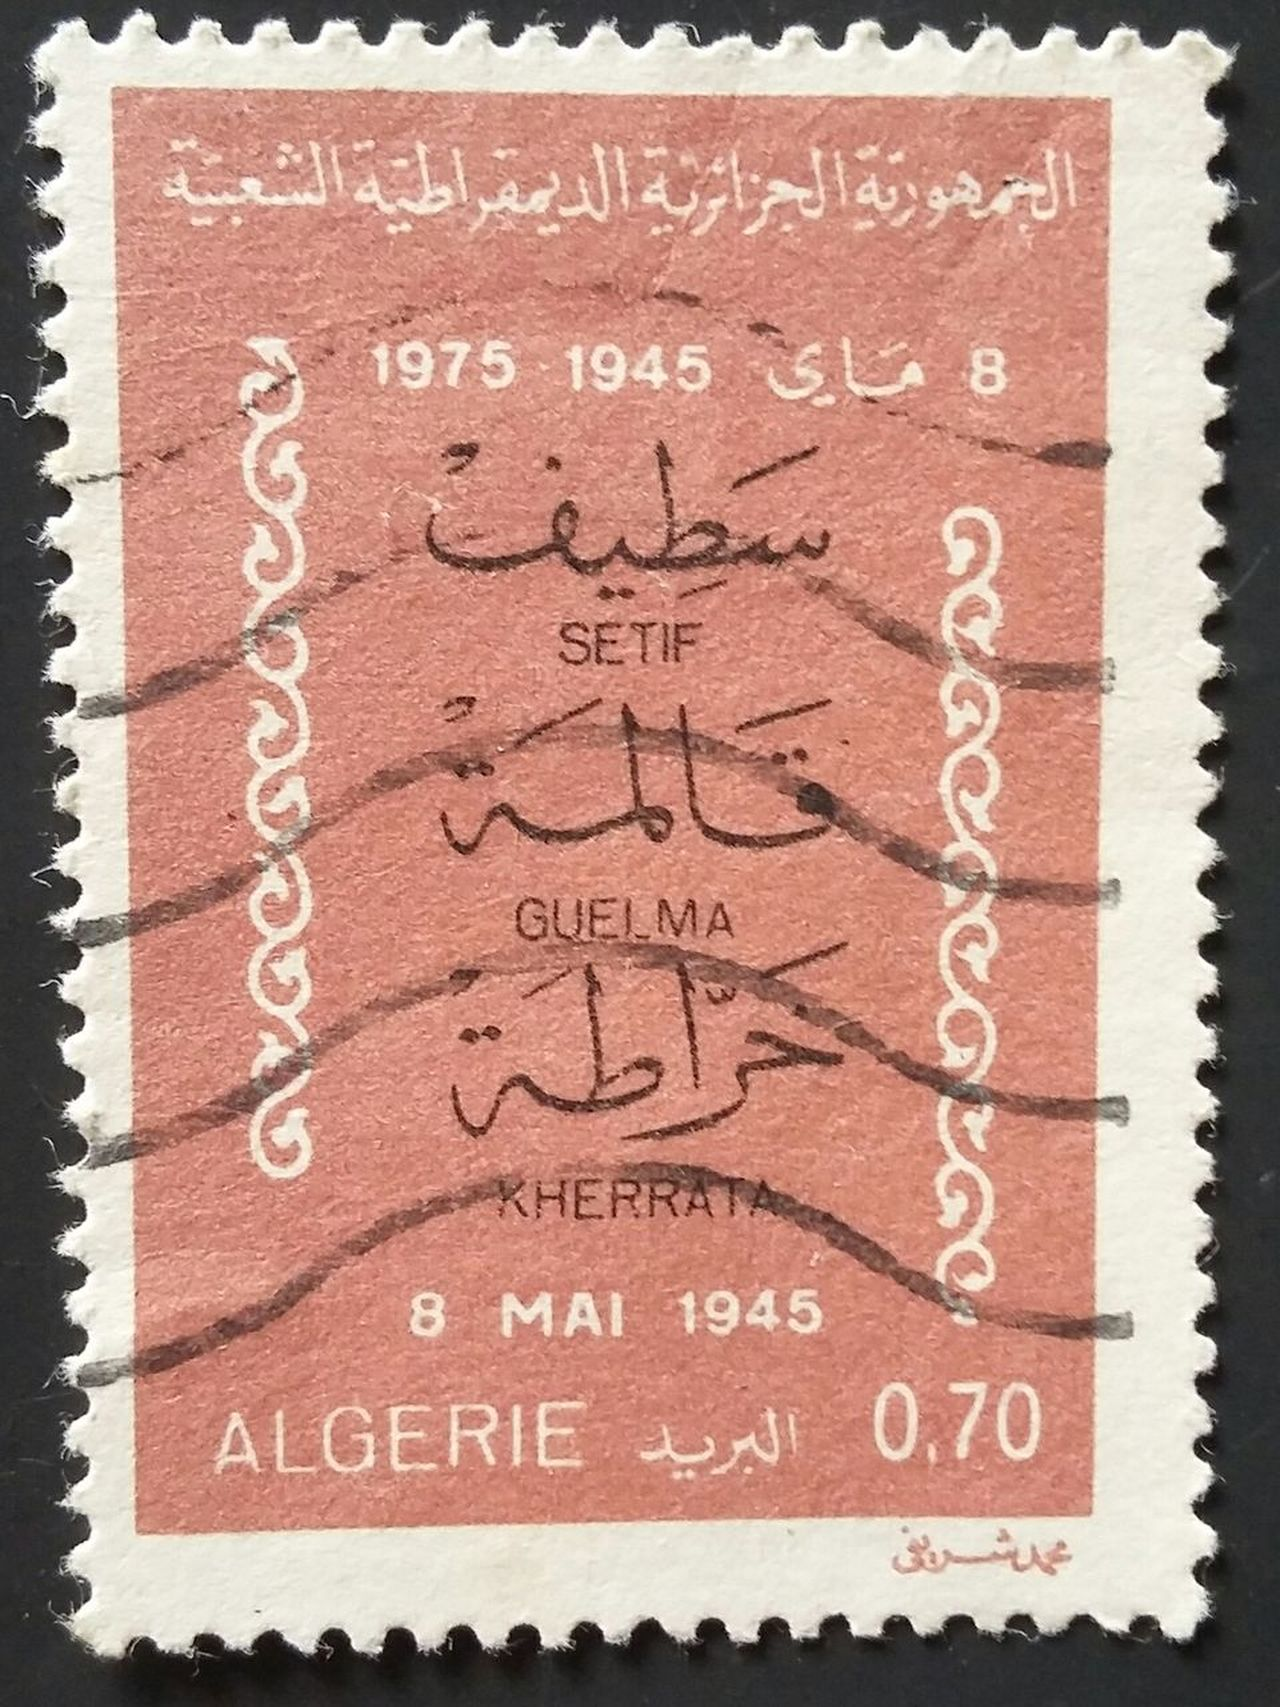 Algérie Philately Stamp Postage Stamps Communication Business Finance And Industry Commemorate Rose Colour Collectibles Old-fashioned People Paper Collections Creativity Politics And Government History